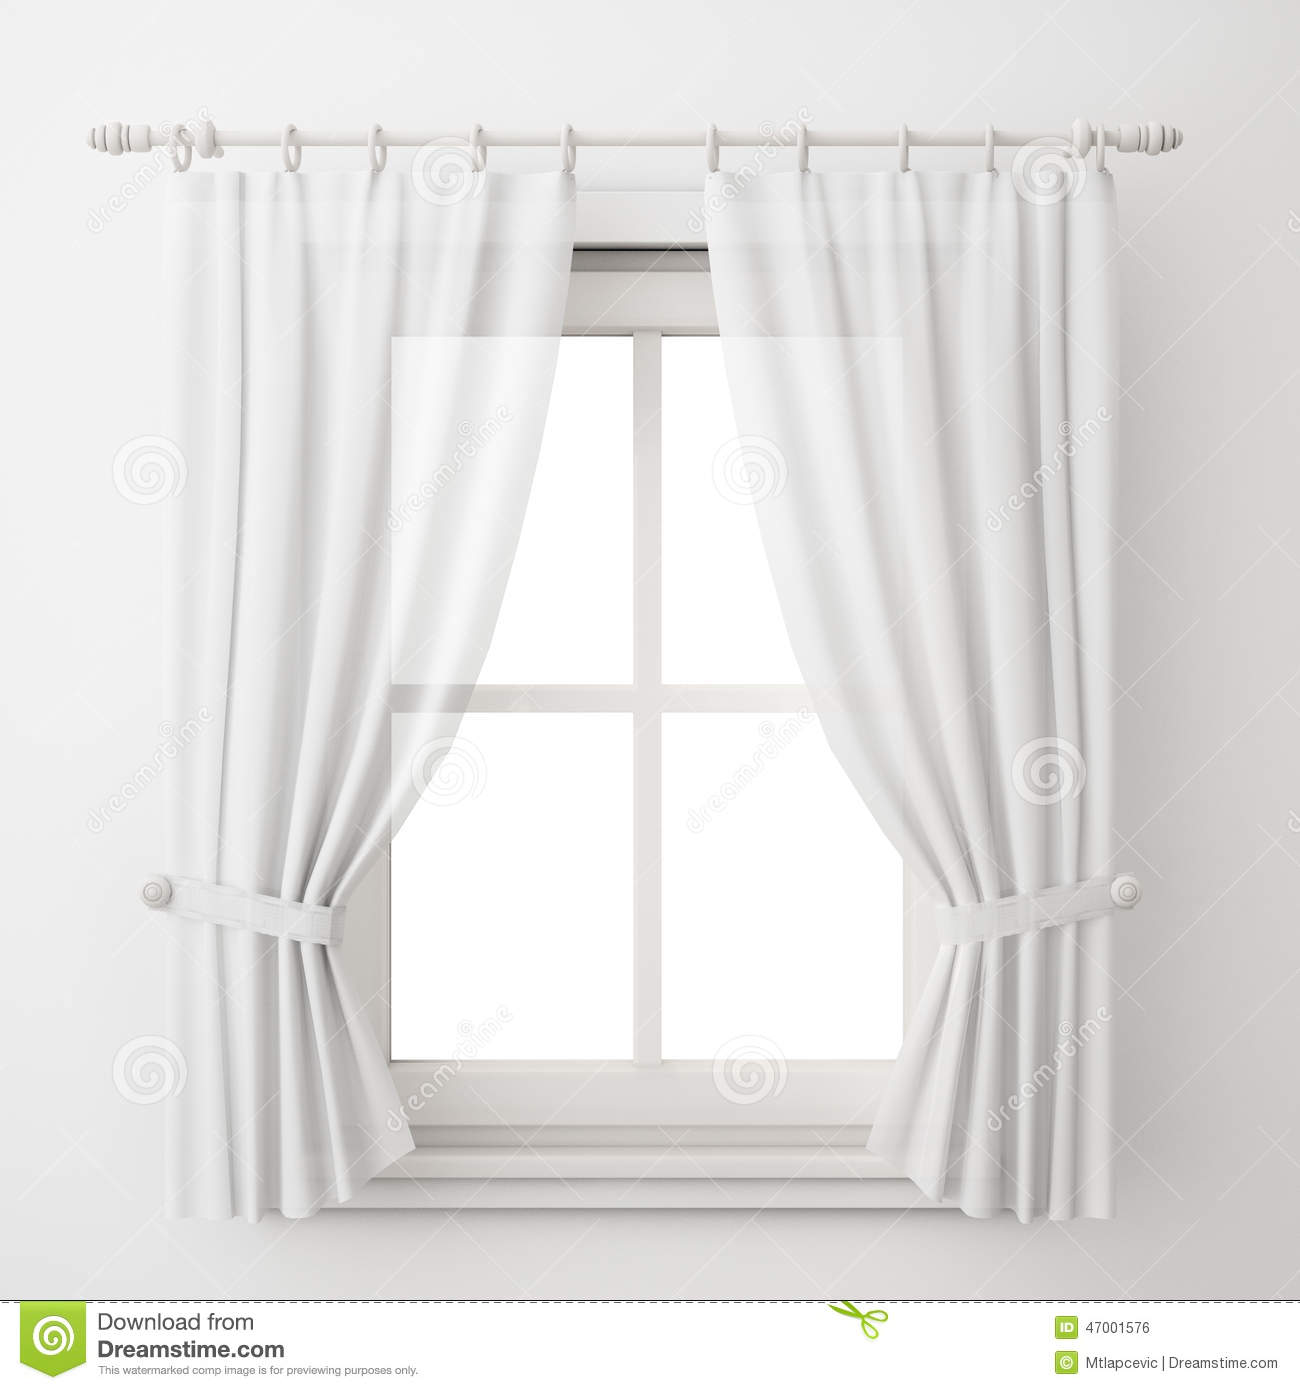 vintage white window frame with curtain isolated on white background stock illustration. Black Bedroom Furniture Sets. Home Design Ideas